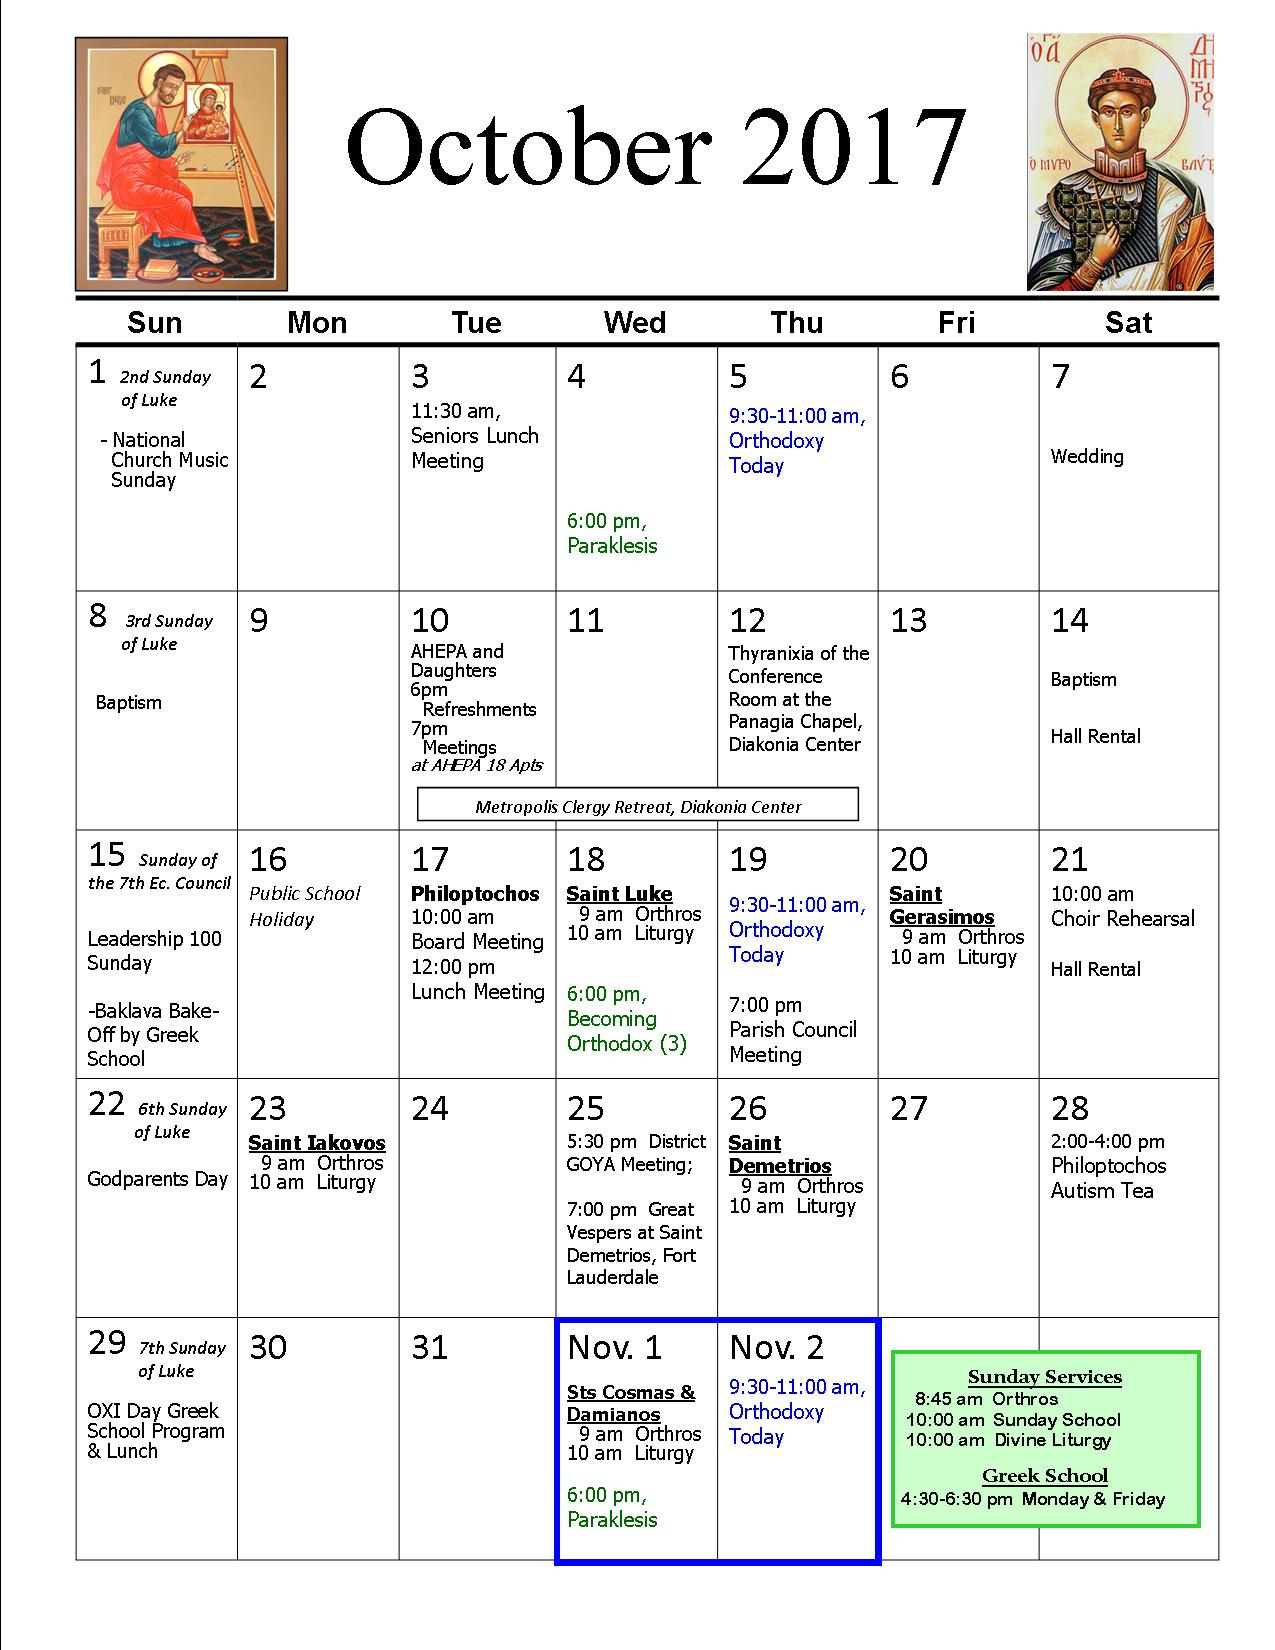 Revised Calendar, Oct 2017